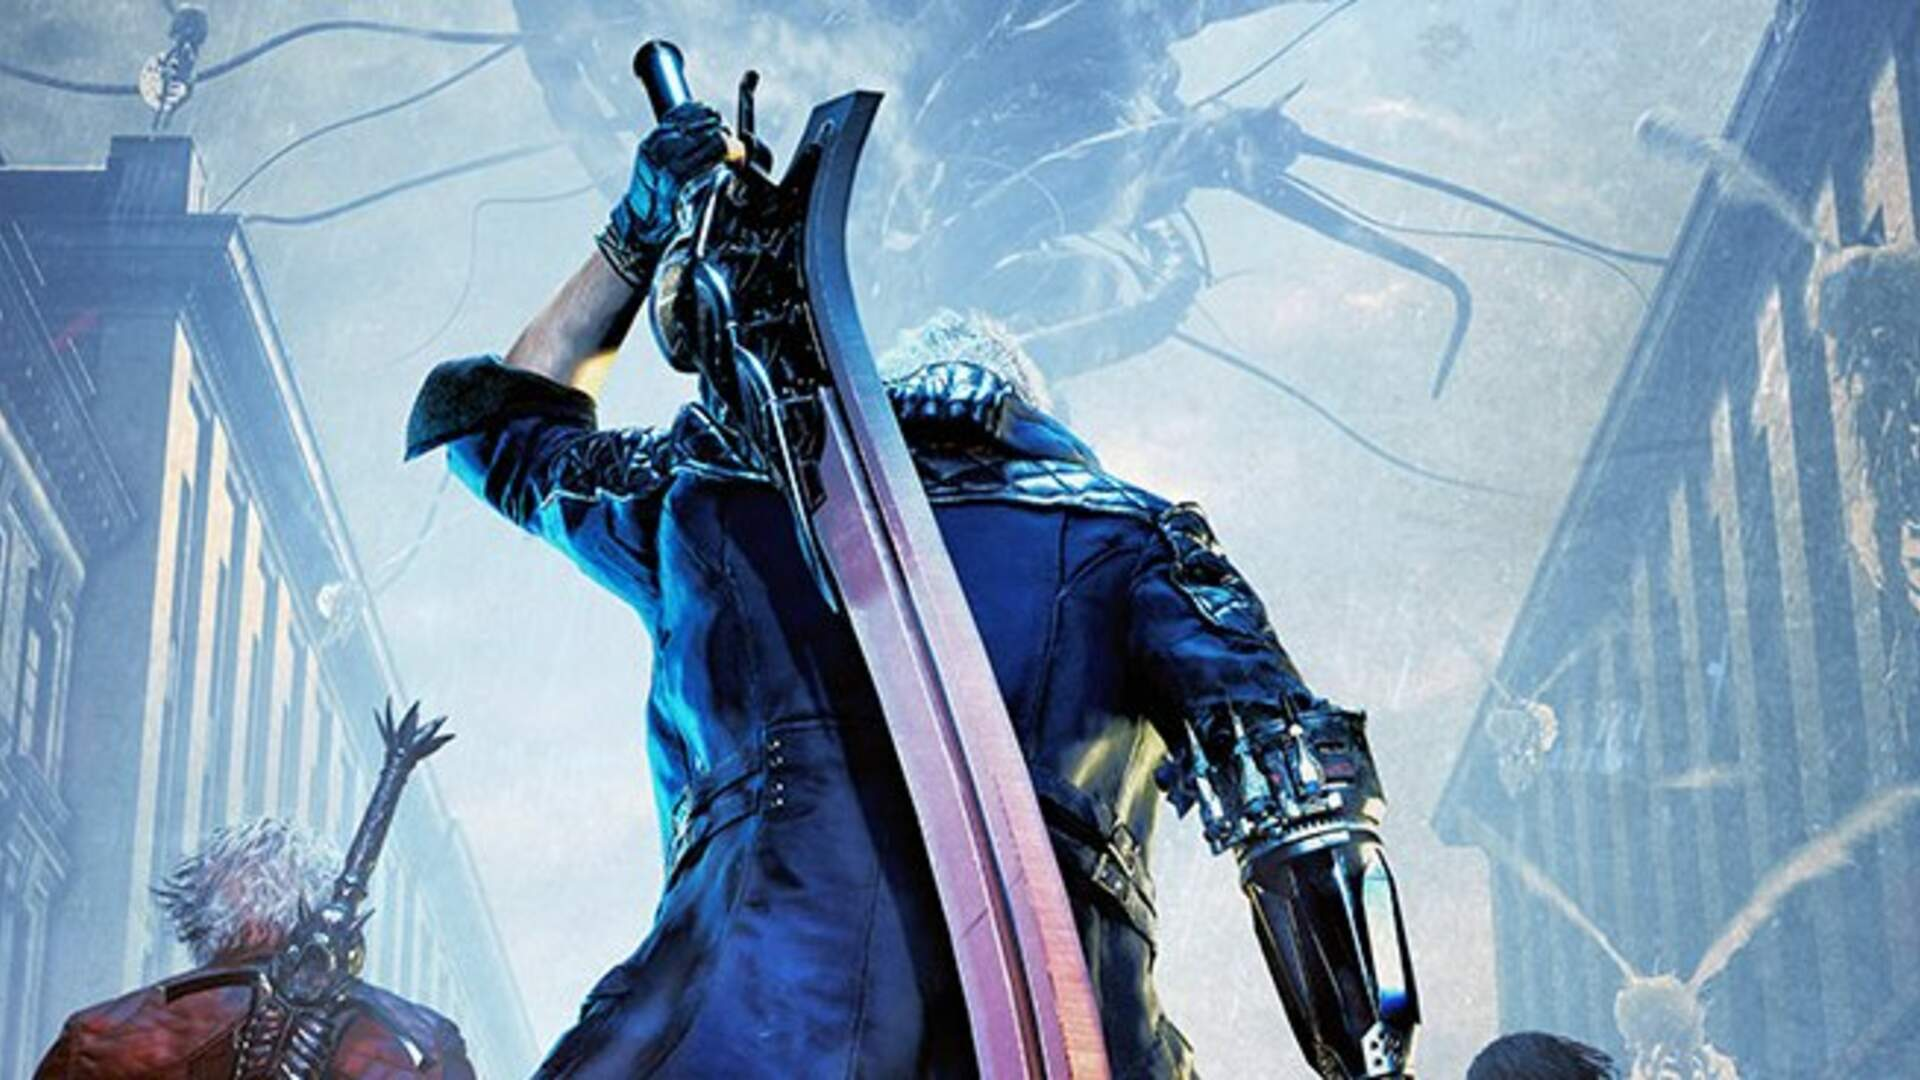 Devil May Cry 5 Review Roundup, Release Date, Gameplay, Characters - Everything we Know